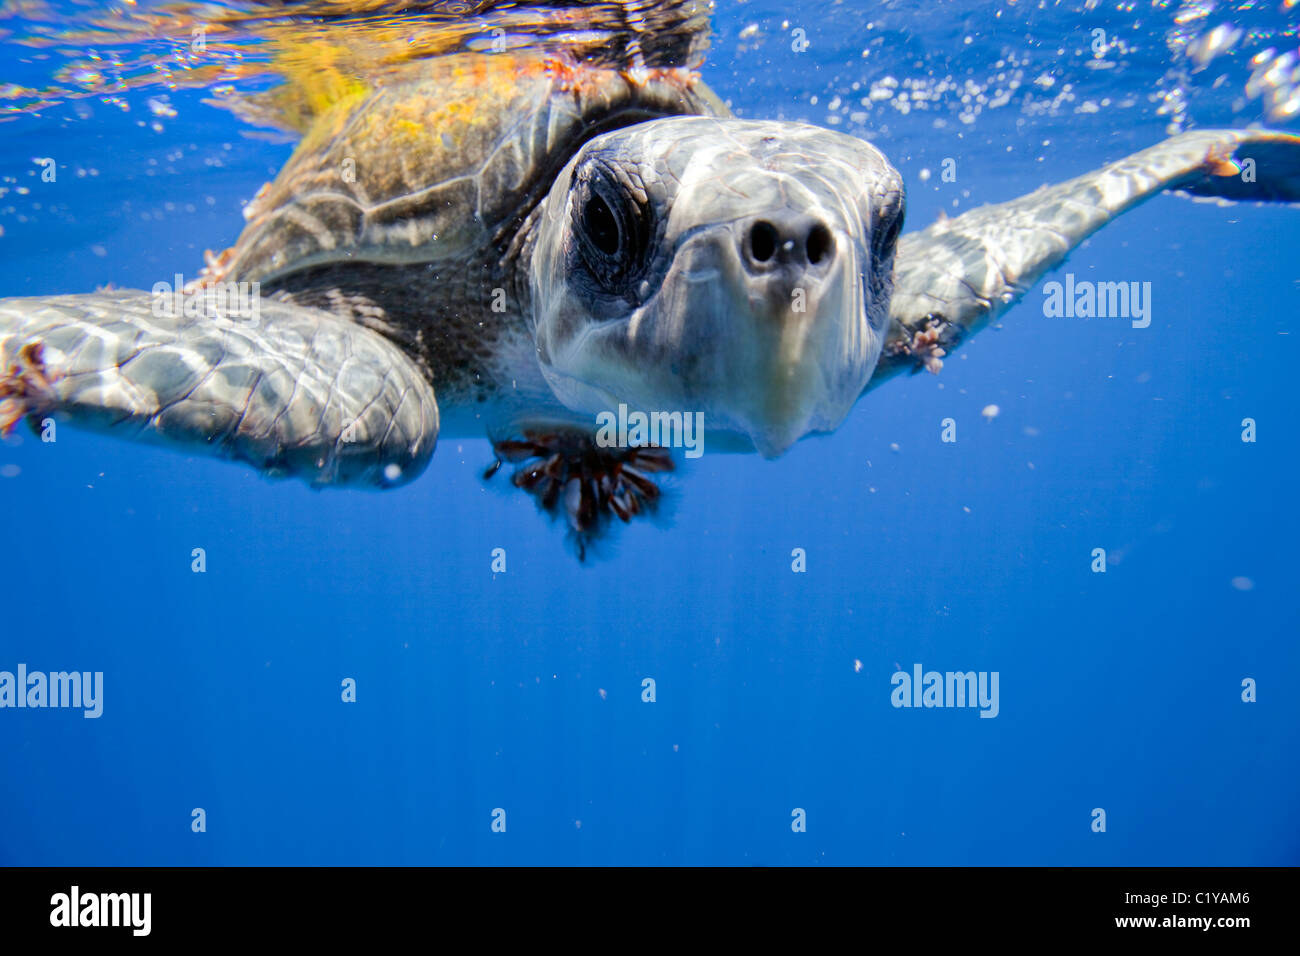 A closeup view of a rare Ridley Sea Turtle at the Cocos Island off the coast of Costa Rica. - Stock Image